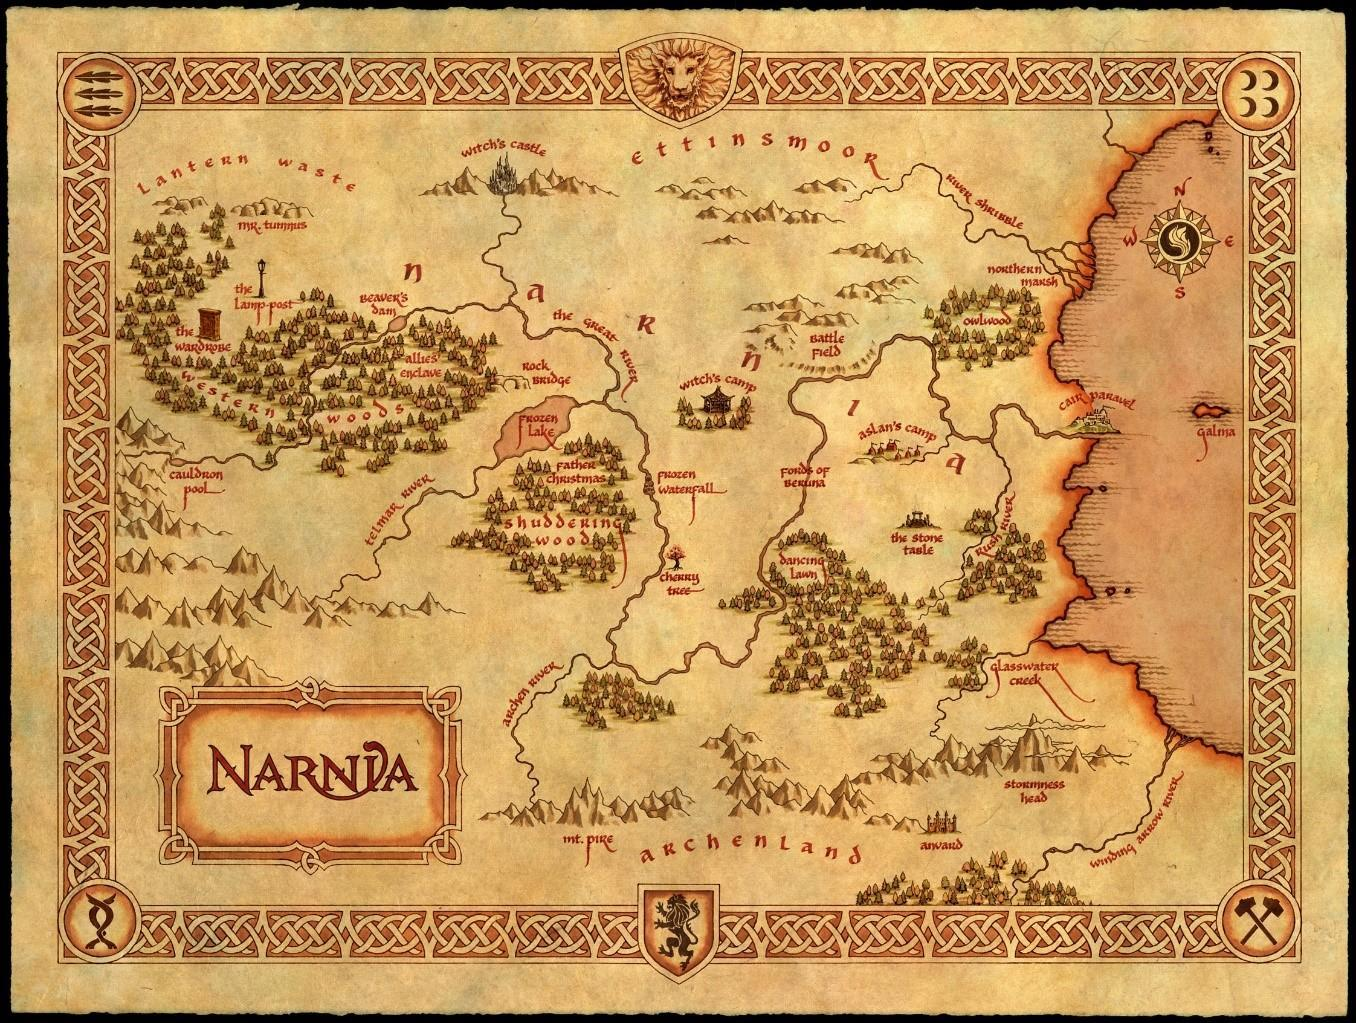 do you enjoy reading the Chronicles of Narnia books?